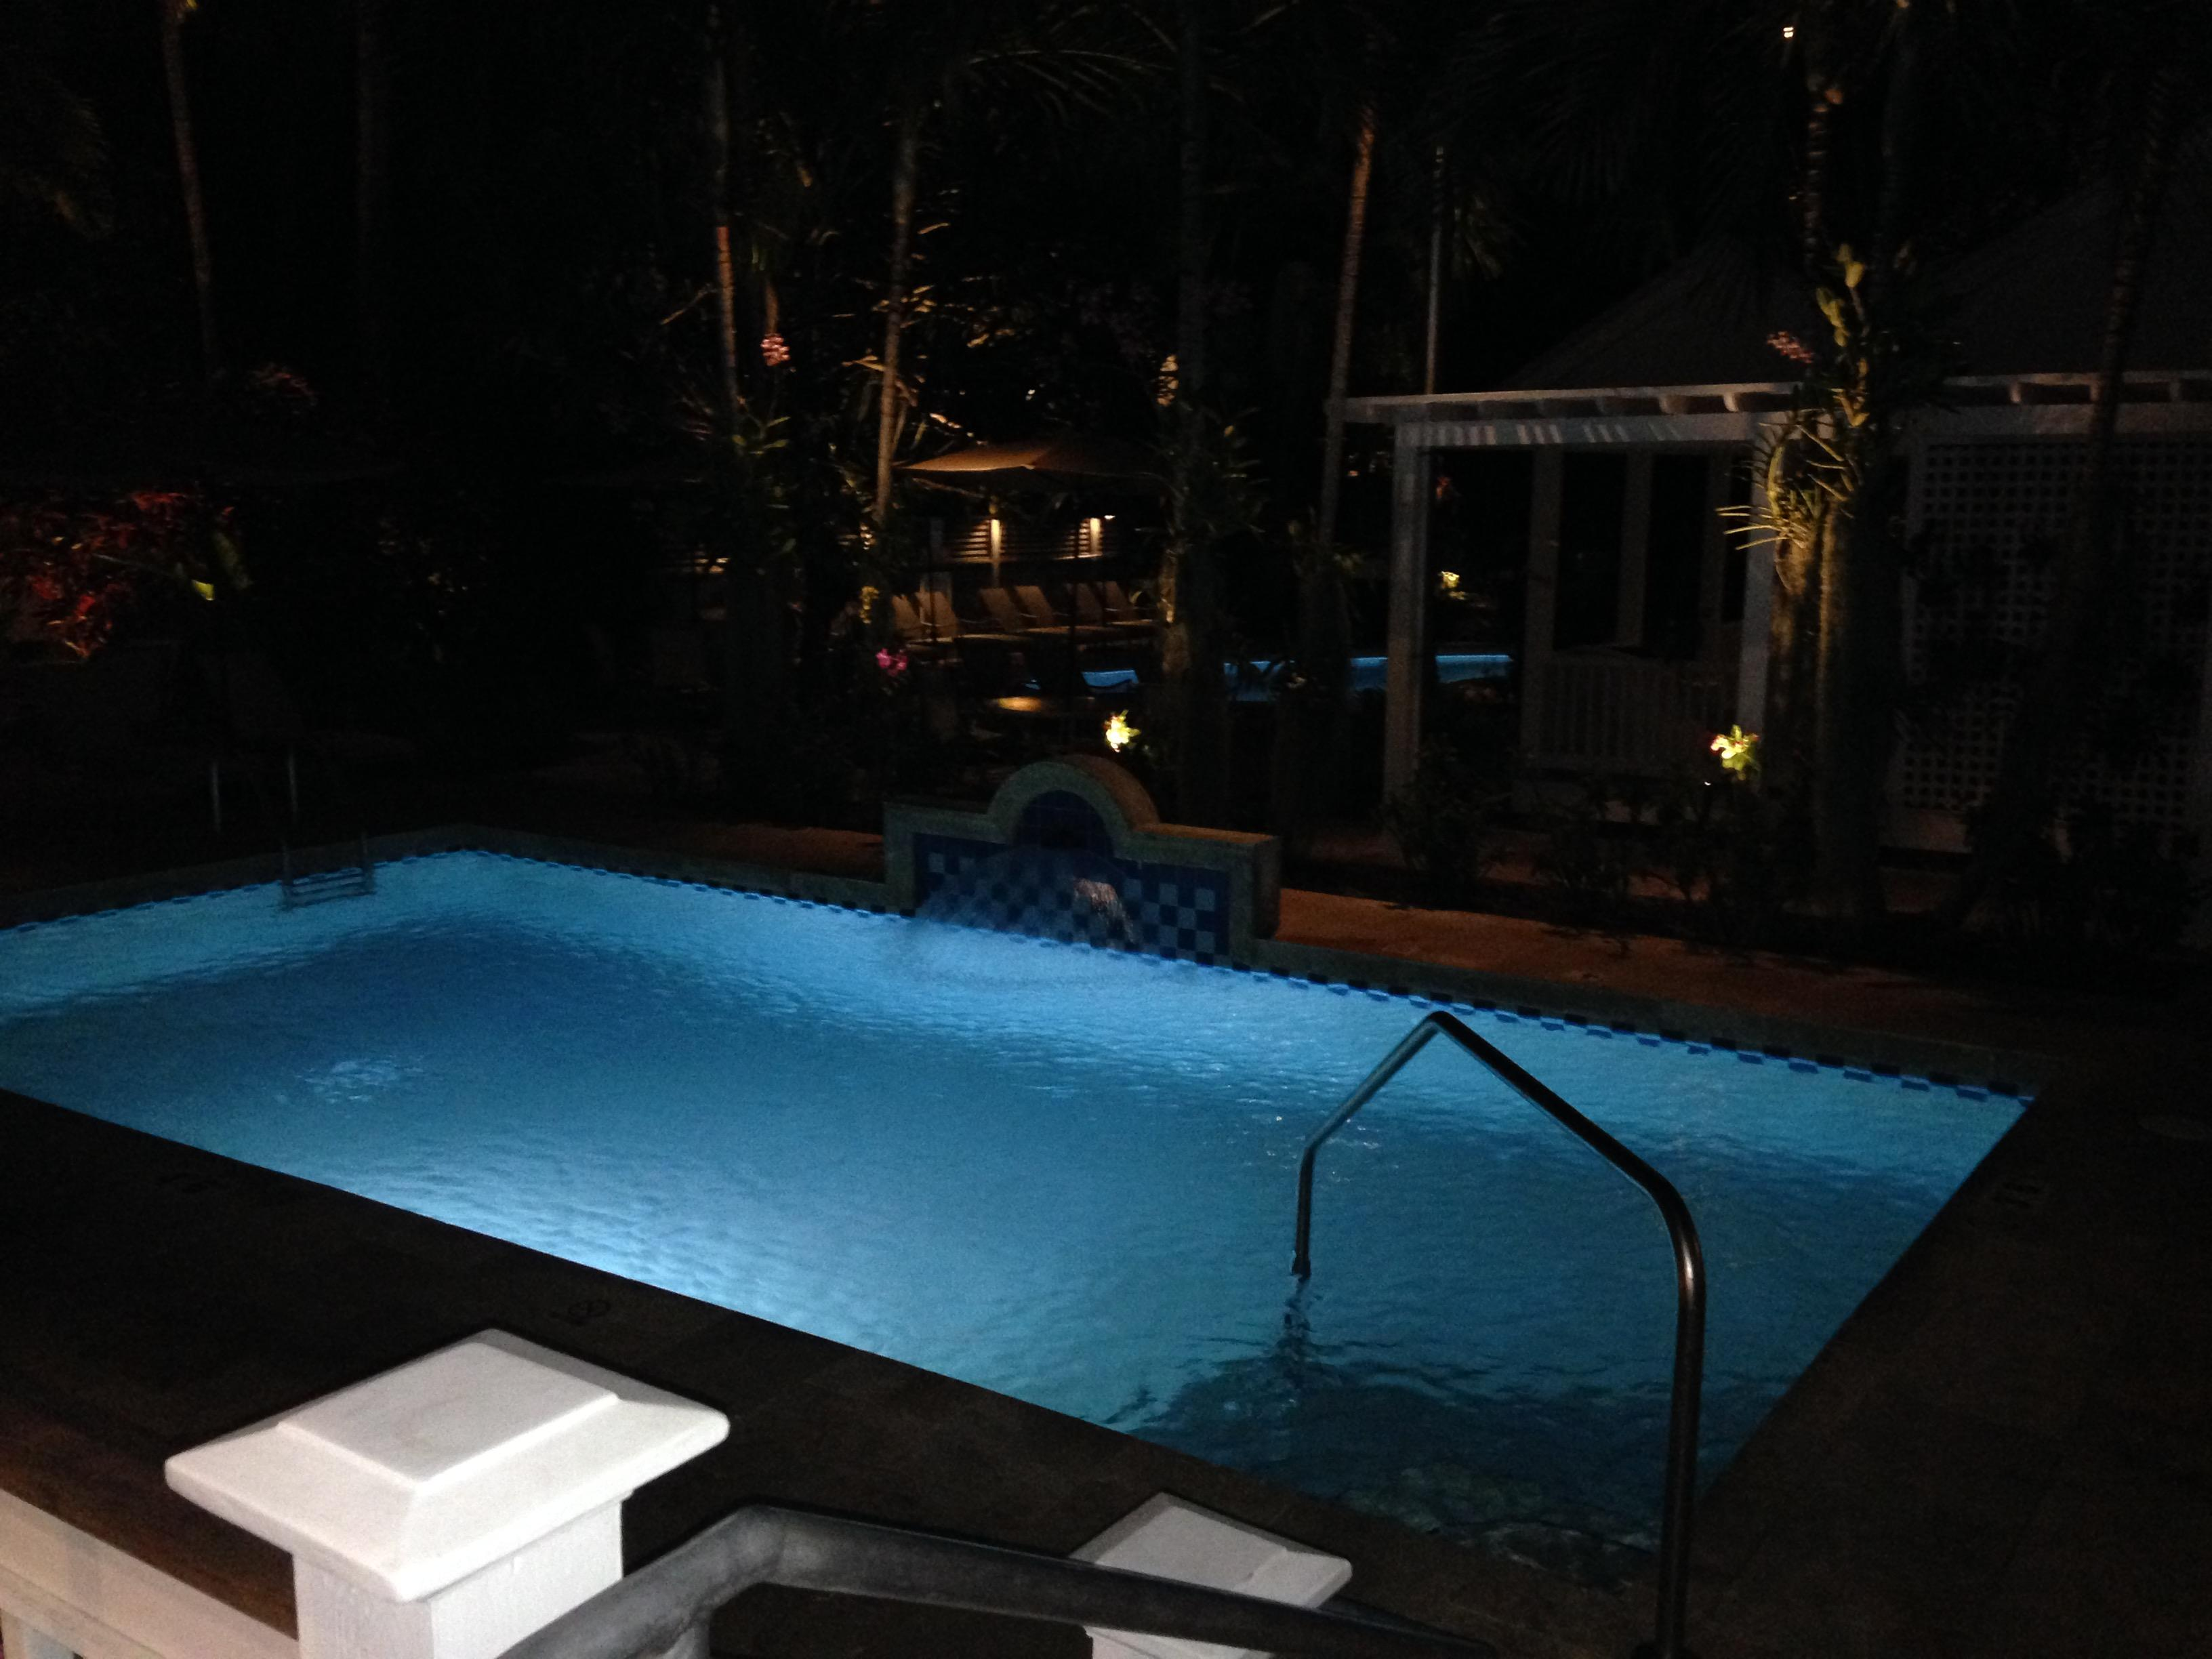 Great pool. If you stay quiet, they will let you use it at night.